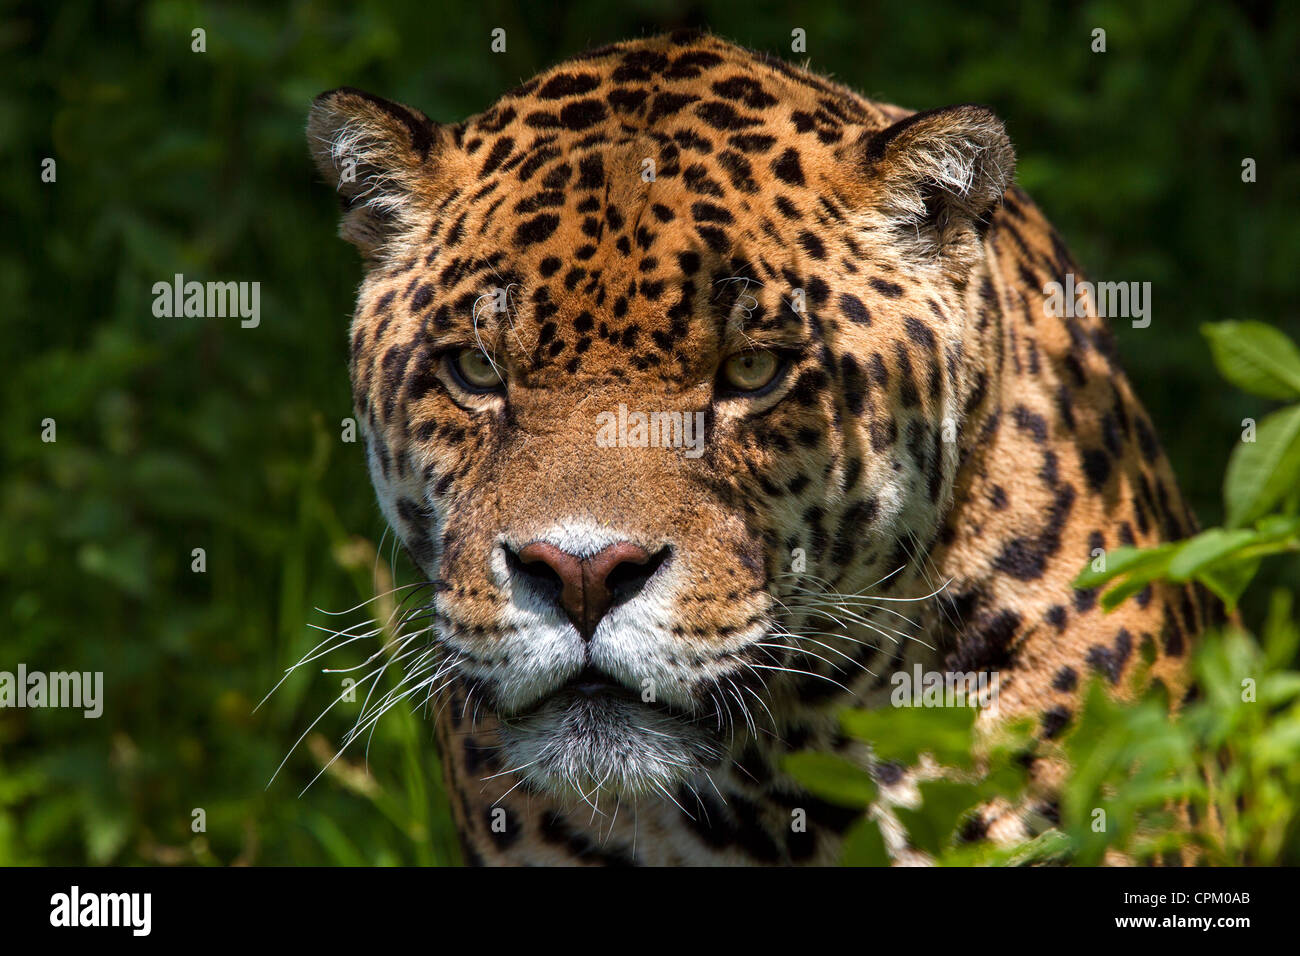 Jaguar Stockbild